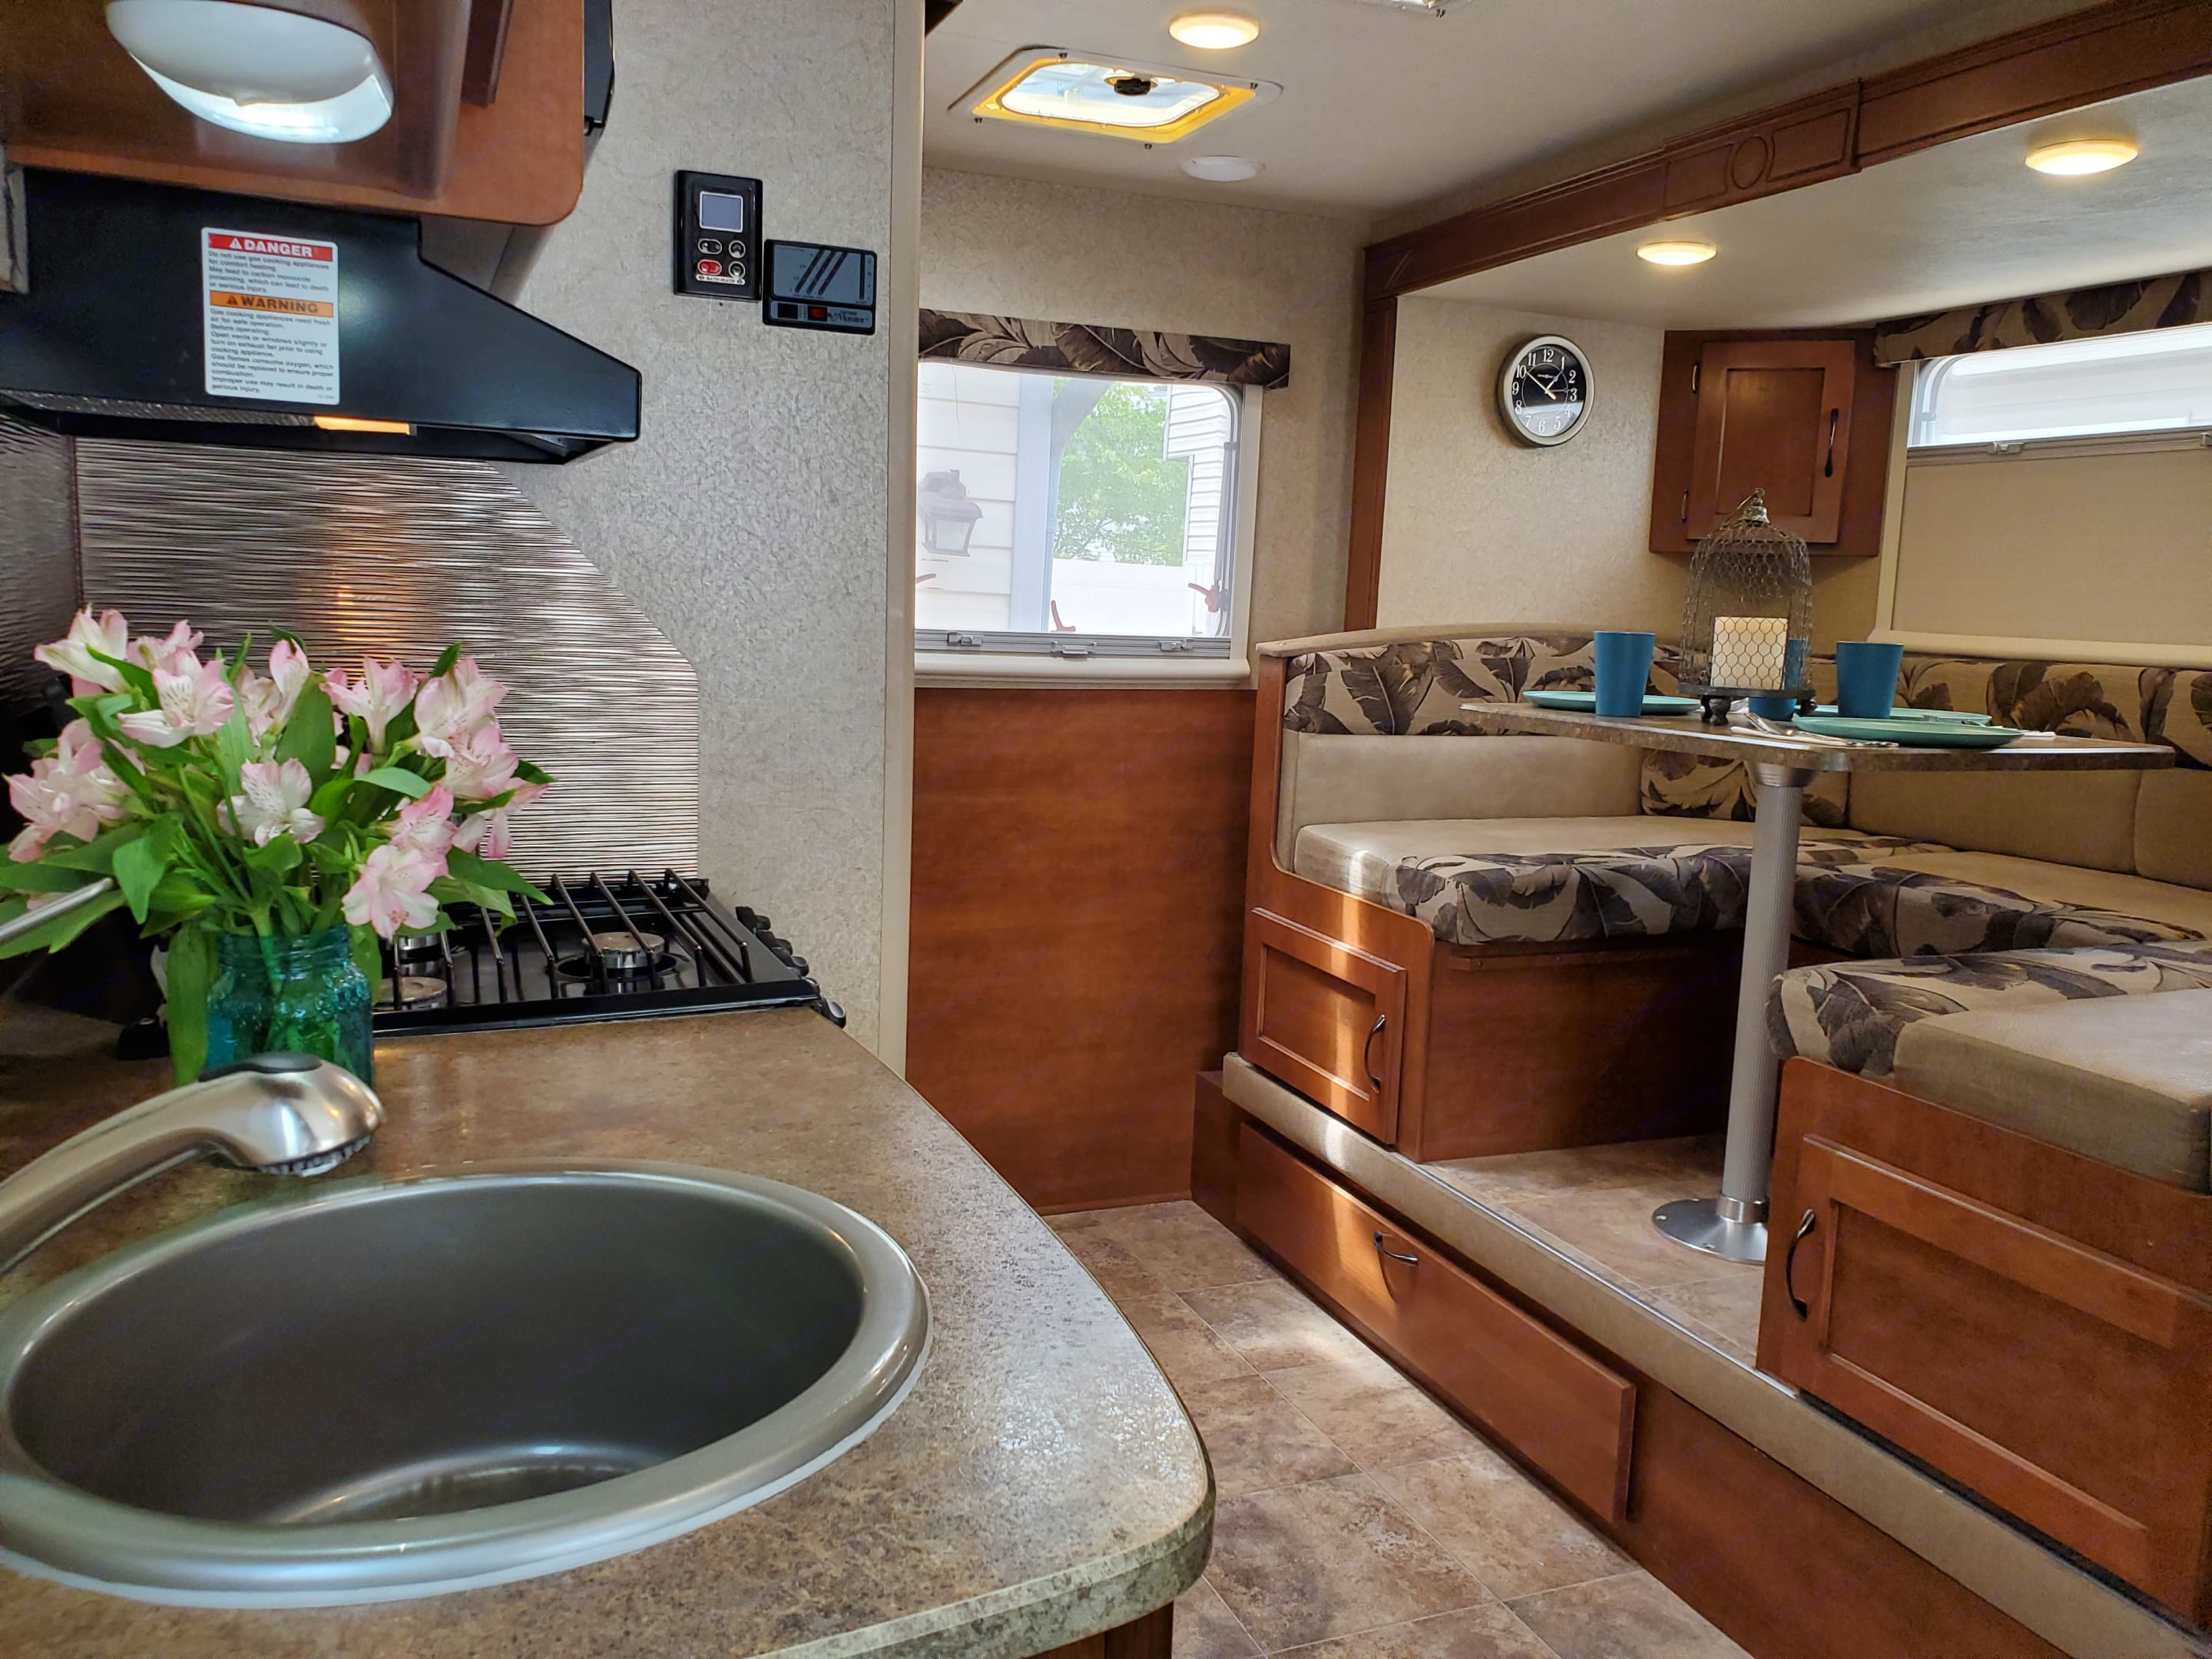 Cute dinette & kitchen - lots of light with windows that open fully so you can enjoy the beautiful area you are staying! . Lance 1575 2016